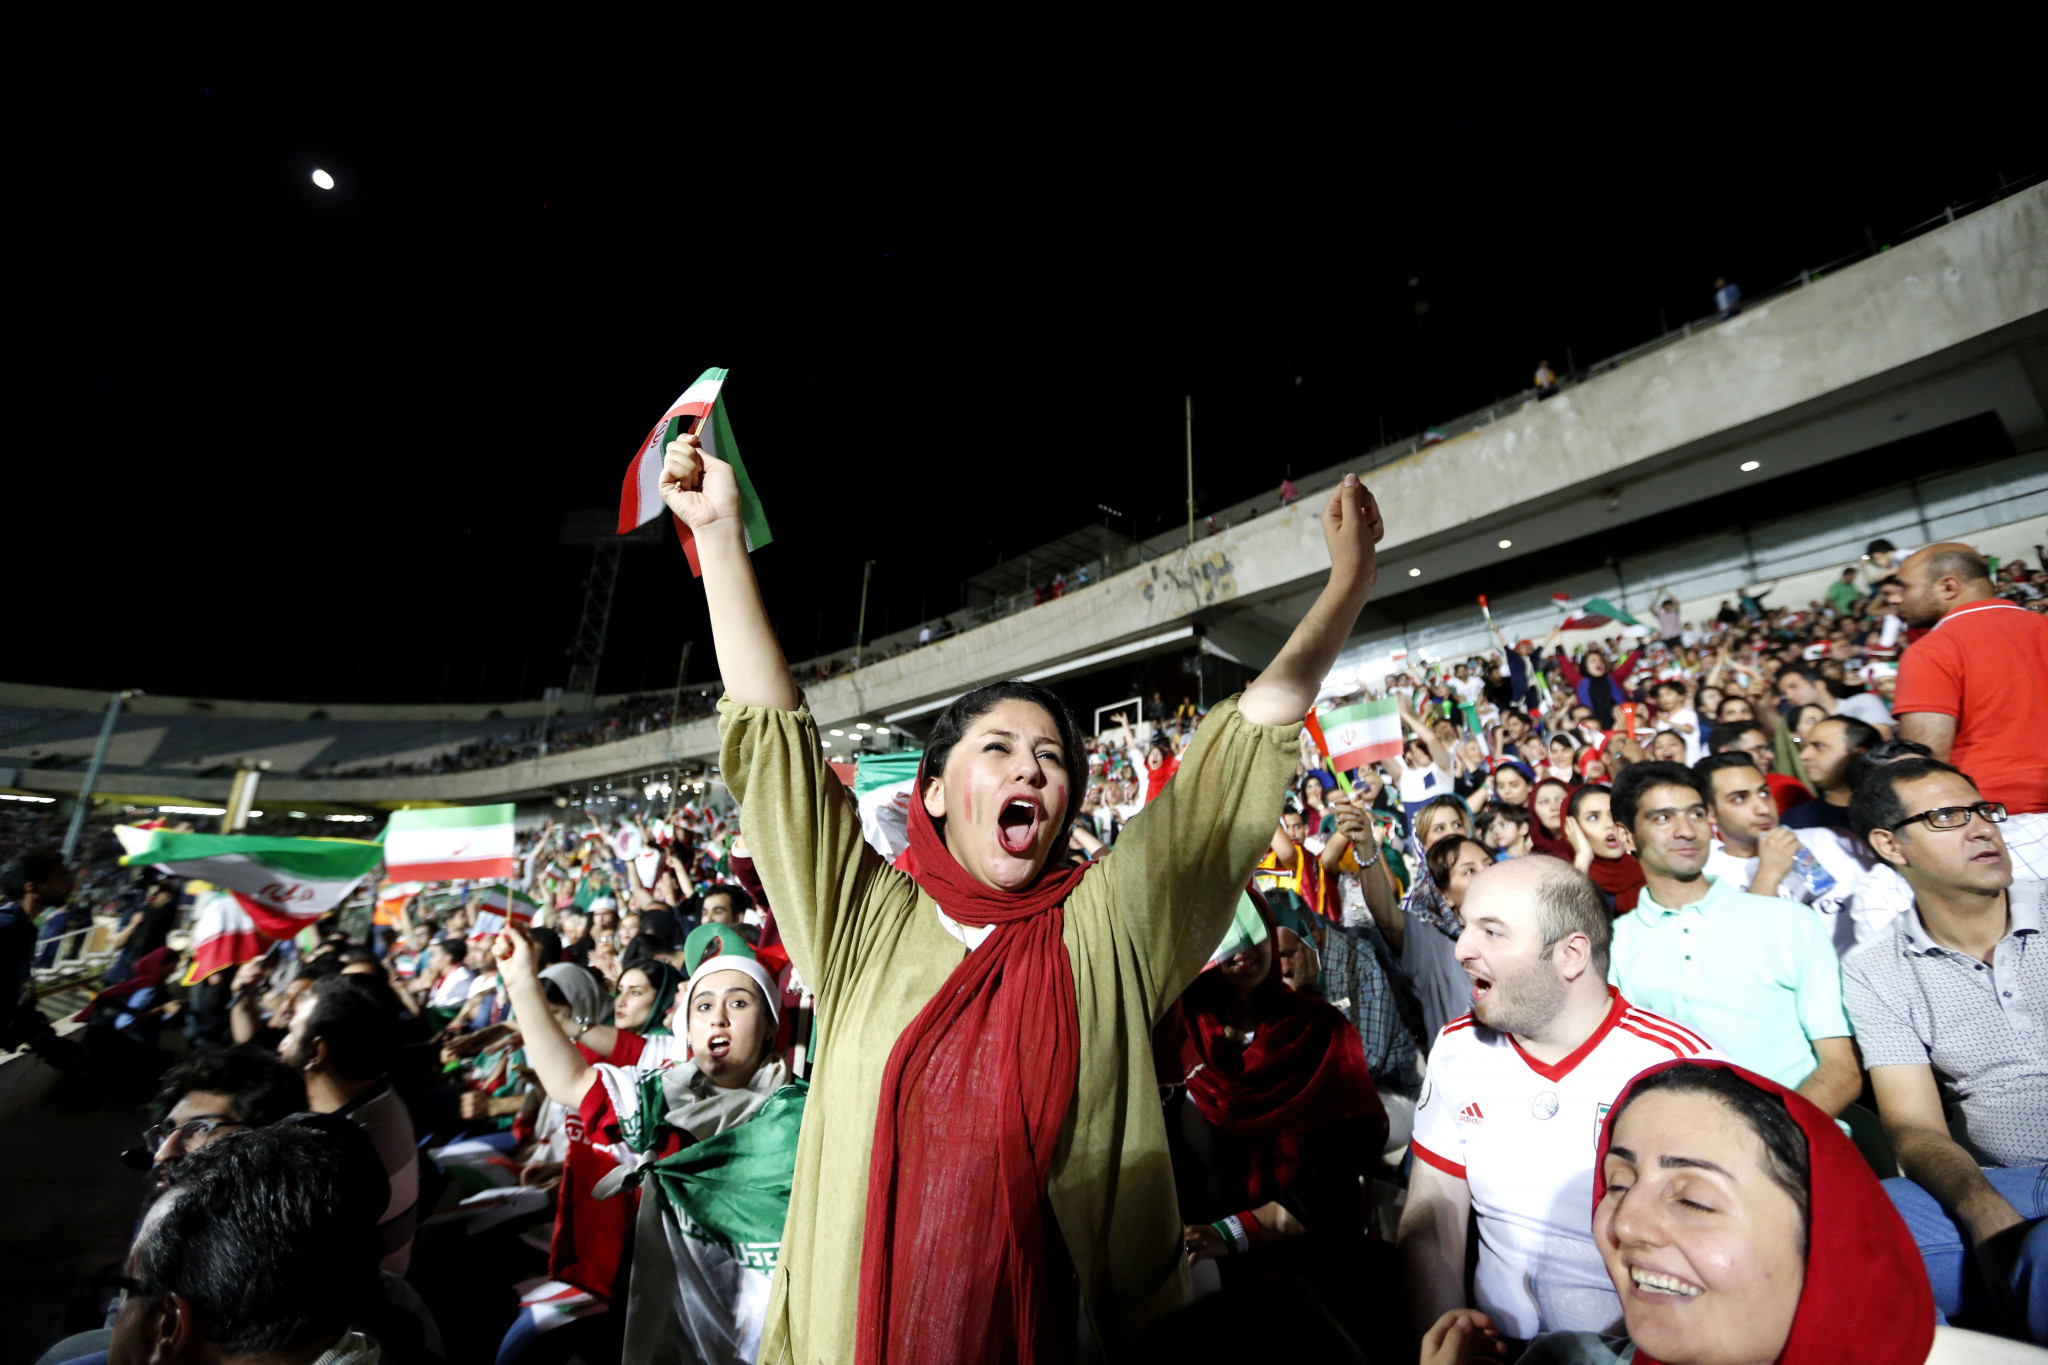 Iranian women were allowed into screenings of Iran's matches at the 2018 FIFA World Cup ©Getty Images